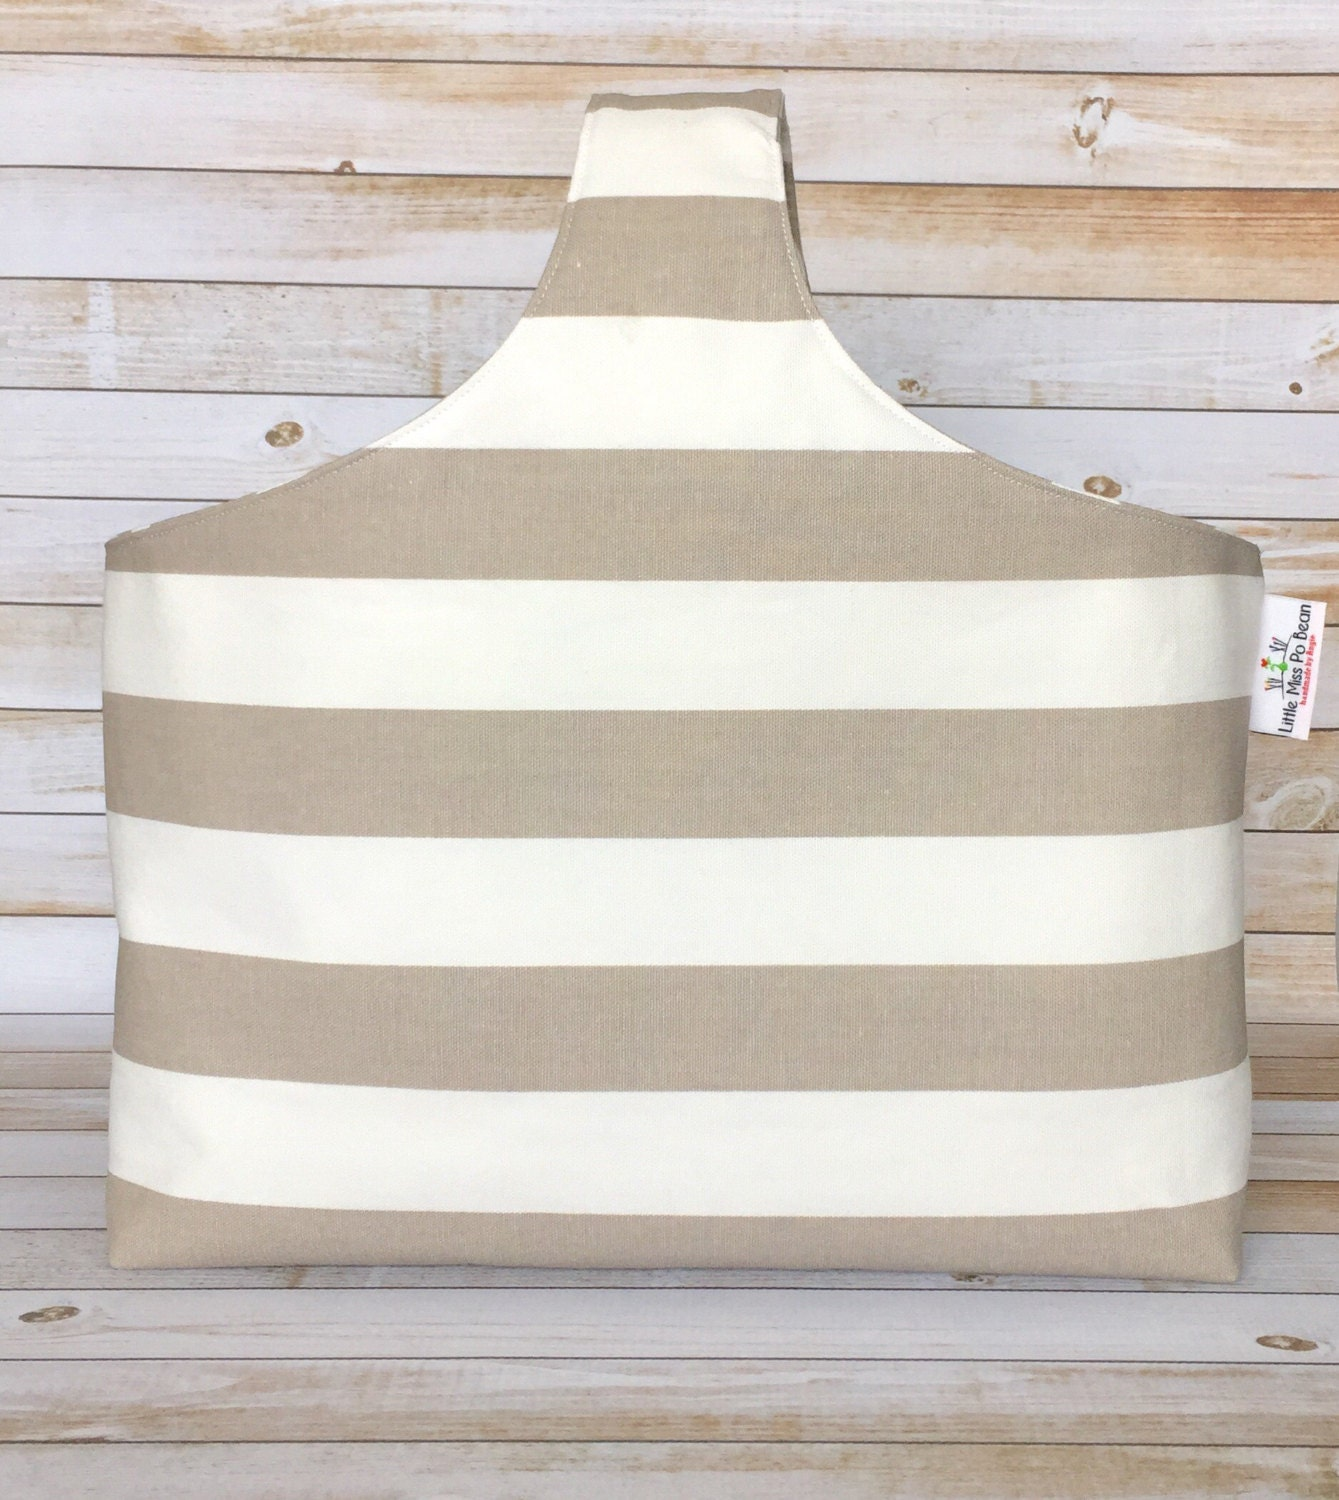 Knitting Project Bags For Sale : Sale beige stripes knitting project bag knitters tote canvas